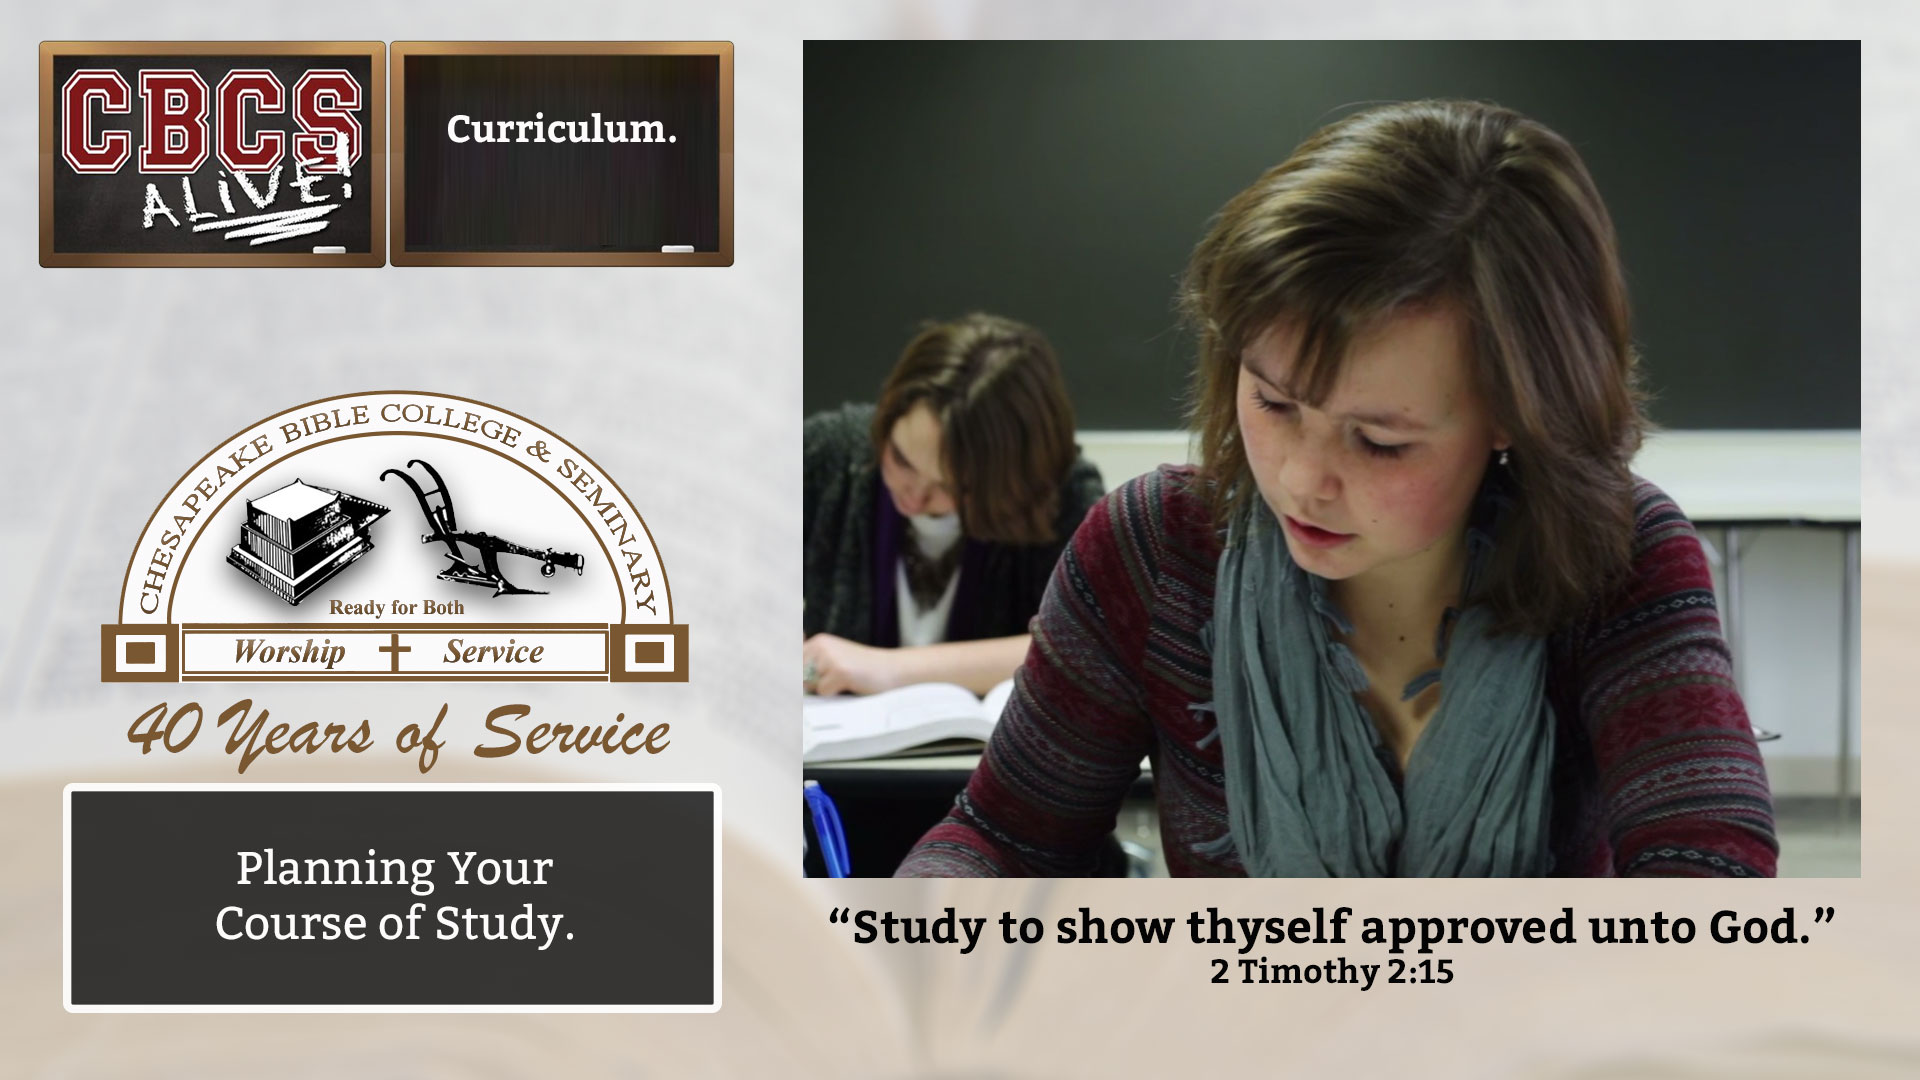 Chesapeake Bible College & Seminary Curriculum